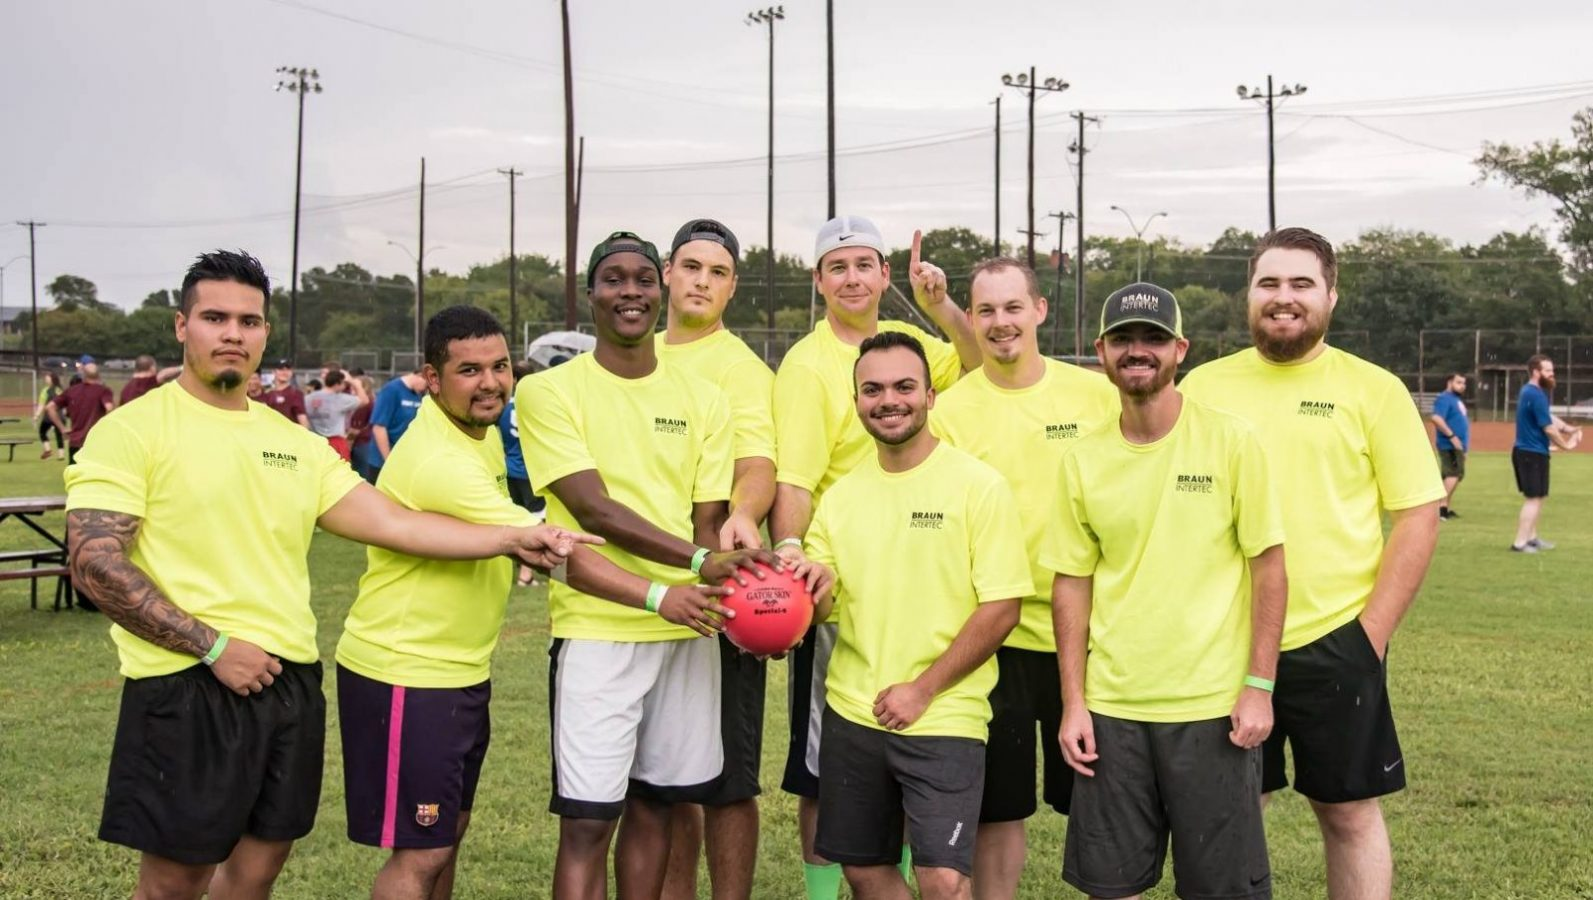 Real Estate Council Dodgeball Tournament